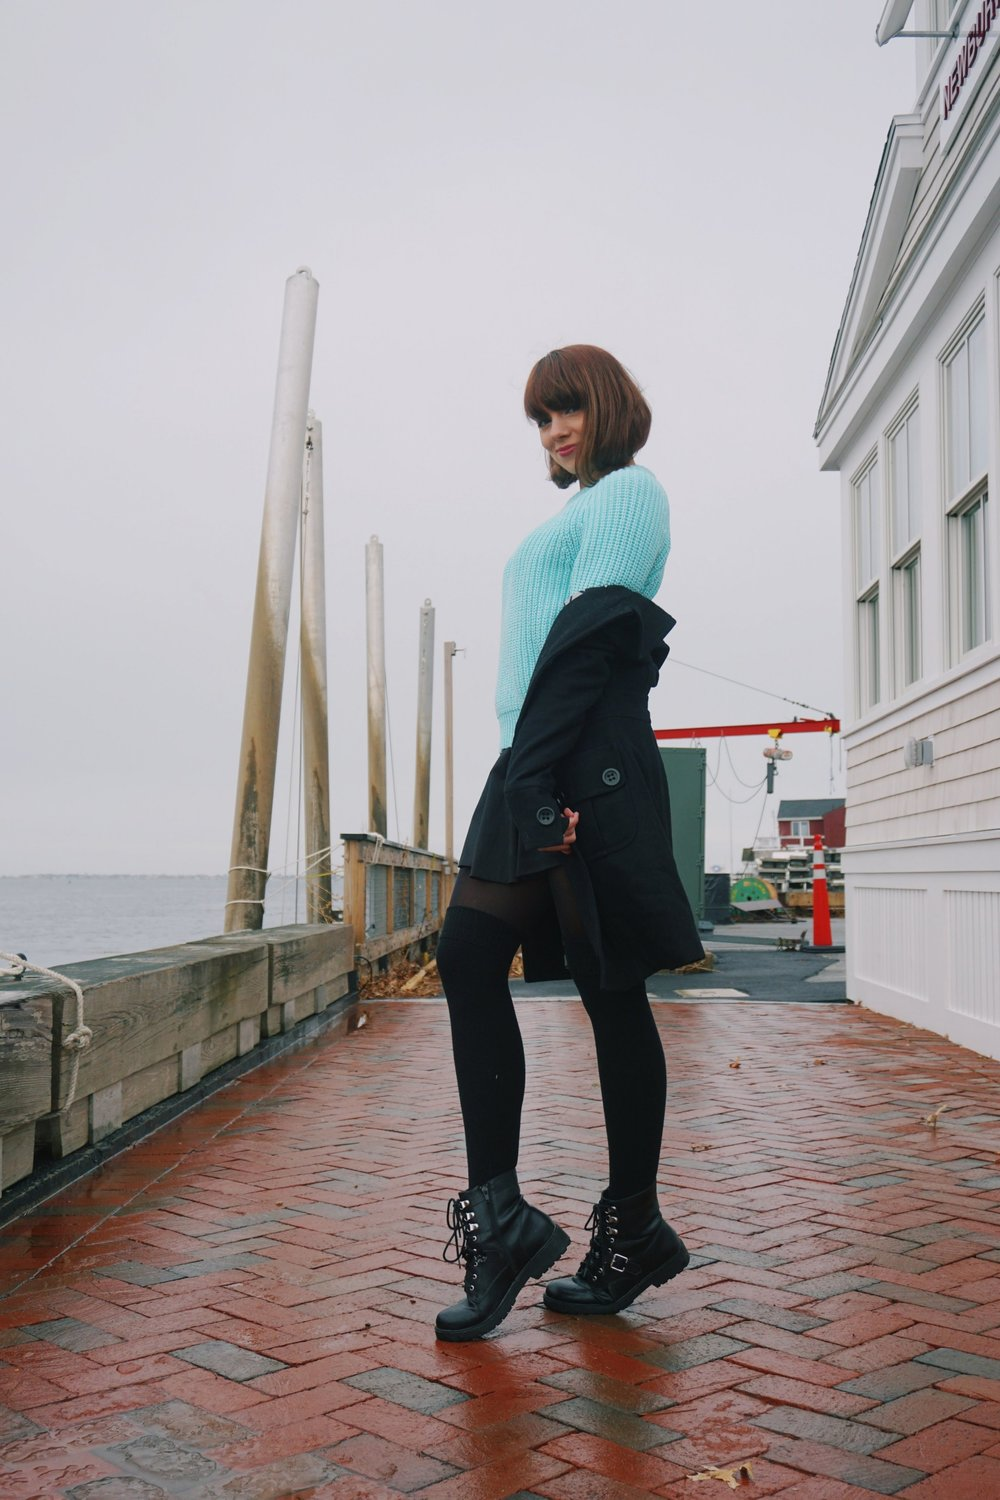 Winter outfit inspiration on a blogger: black coat, blue oversized sweater, short black skirt, black tights and over the knee socks, and black army boots.